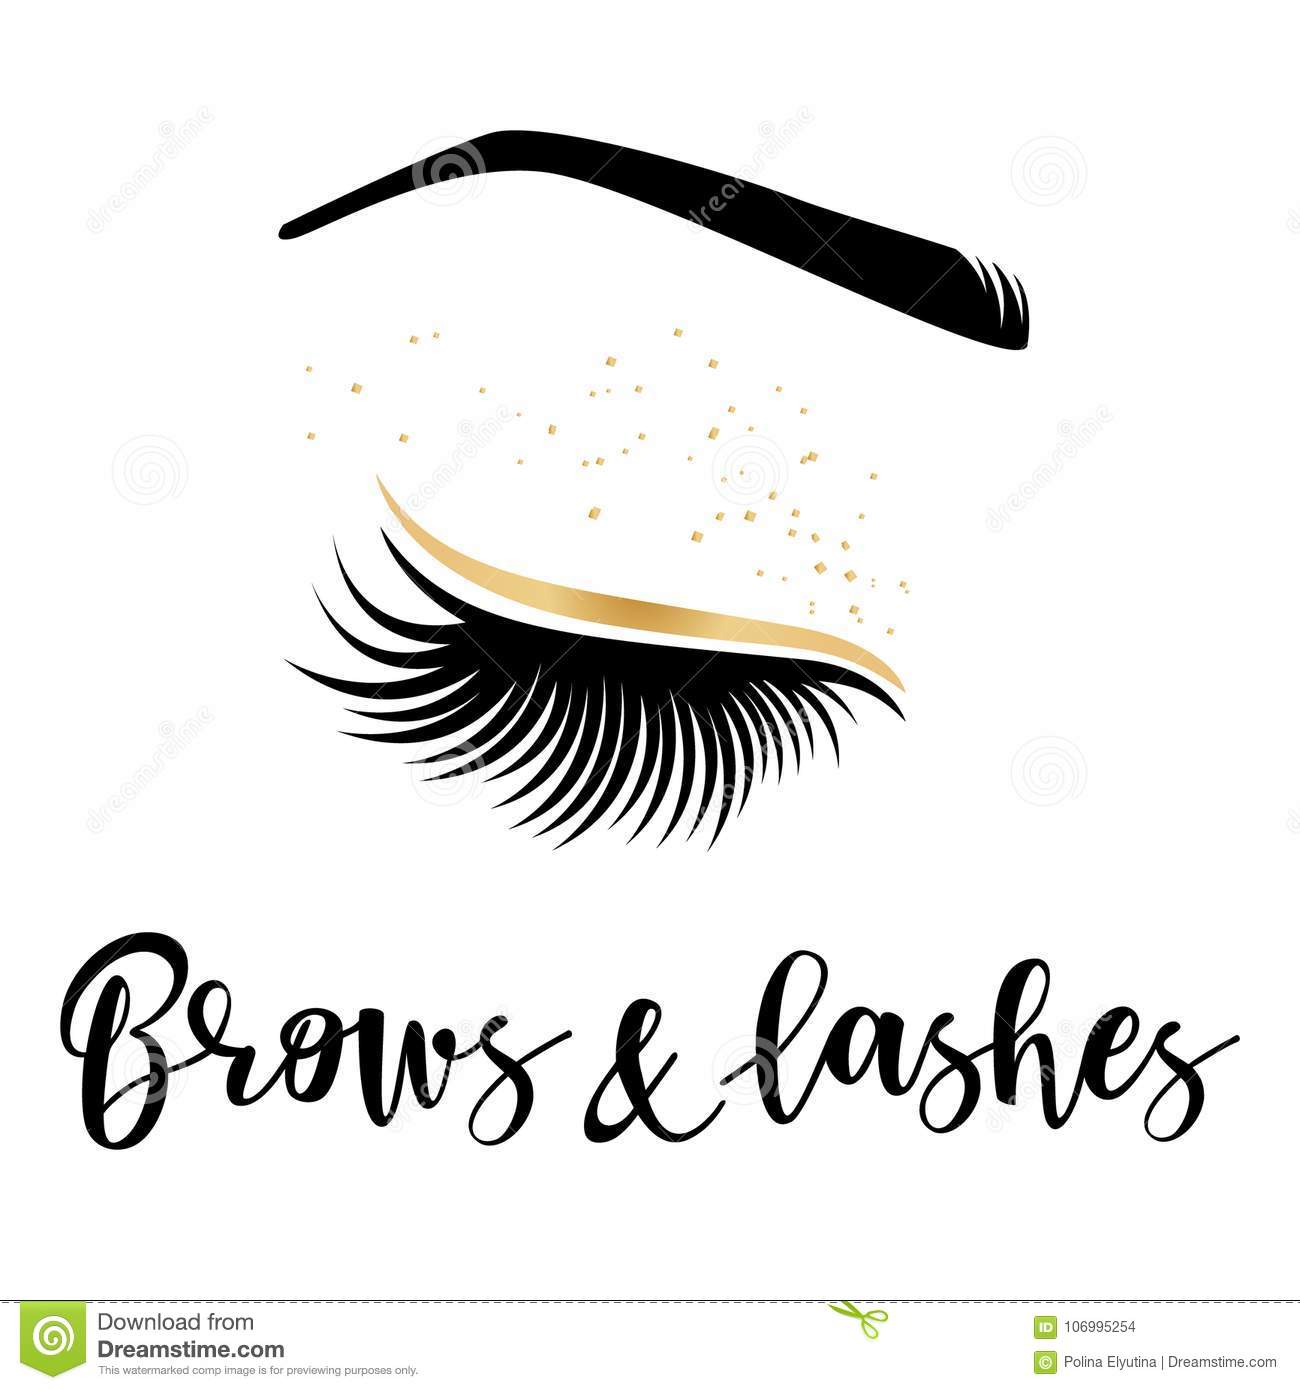 24ba66ea2f9 Brows and lashes gold logo. Vector illustration of lashes and brow. For  beauty salon, lash extensions maker, brow master.